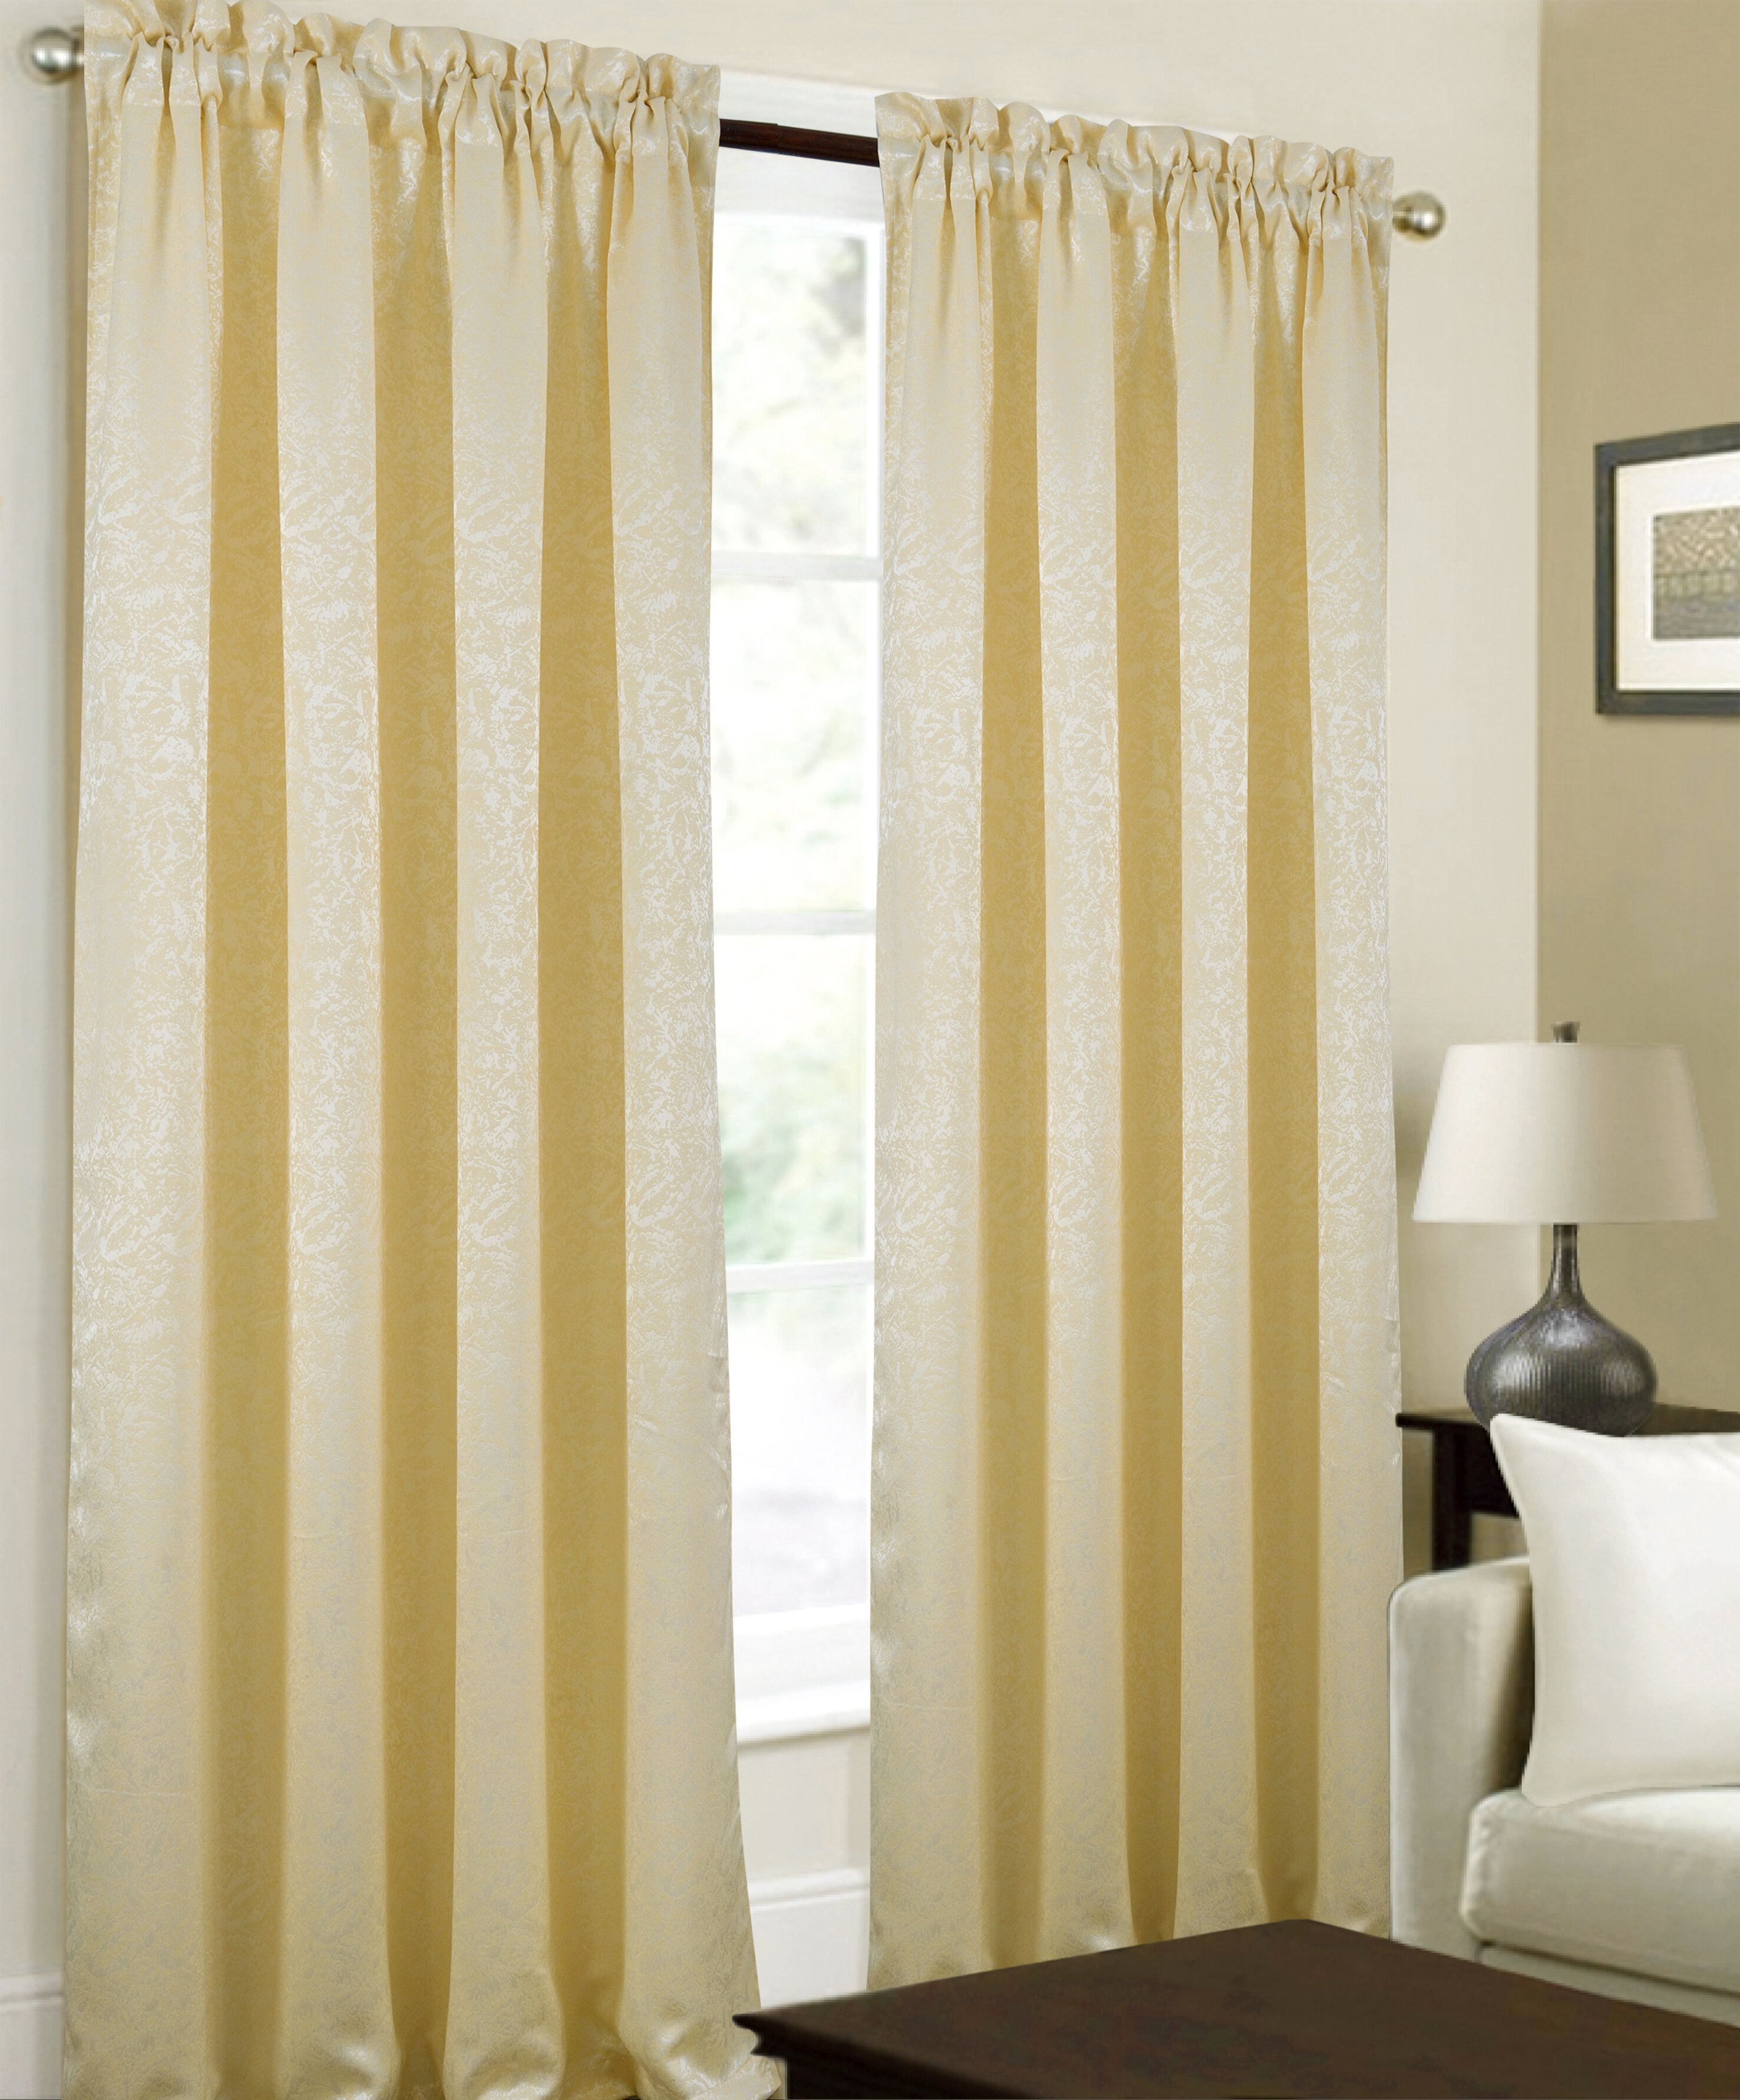 Capel Textured Jacquard Abstract Semi Sheer Rod Pocket Curtain Panels Throughout Abstract Blackout Curtain Panel Pairs (Image 2 of 22)